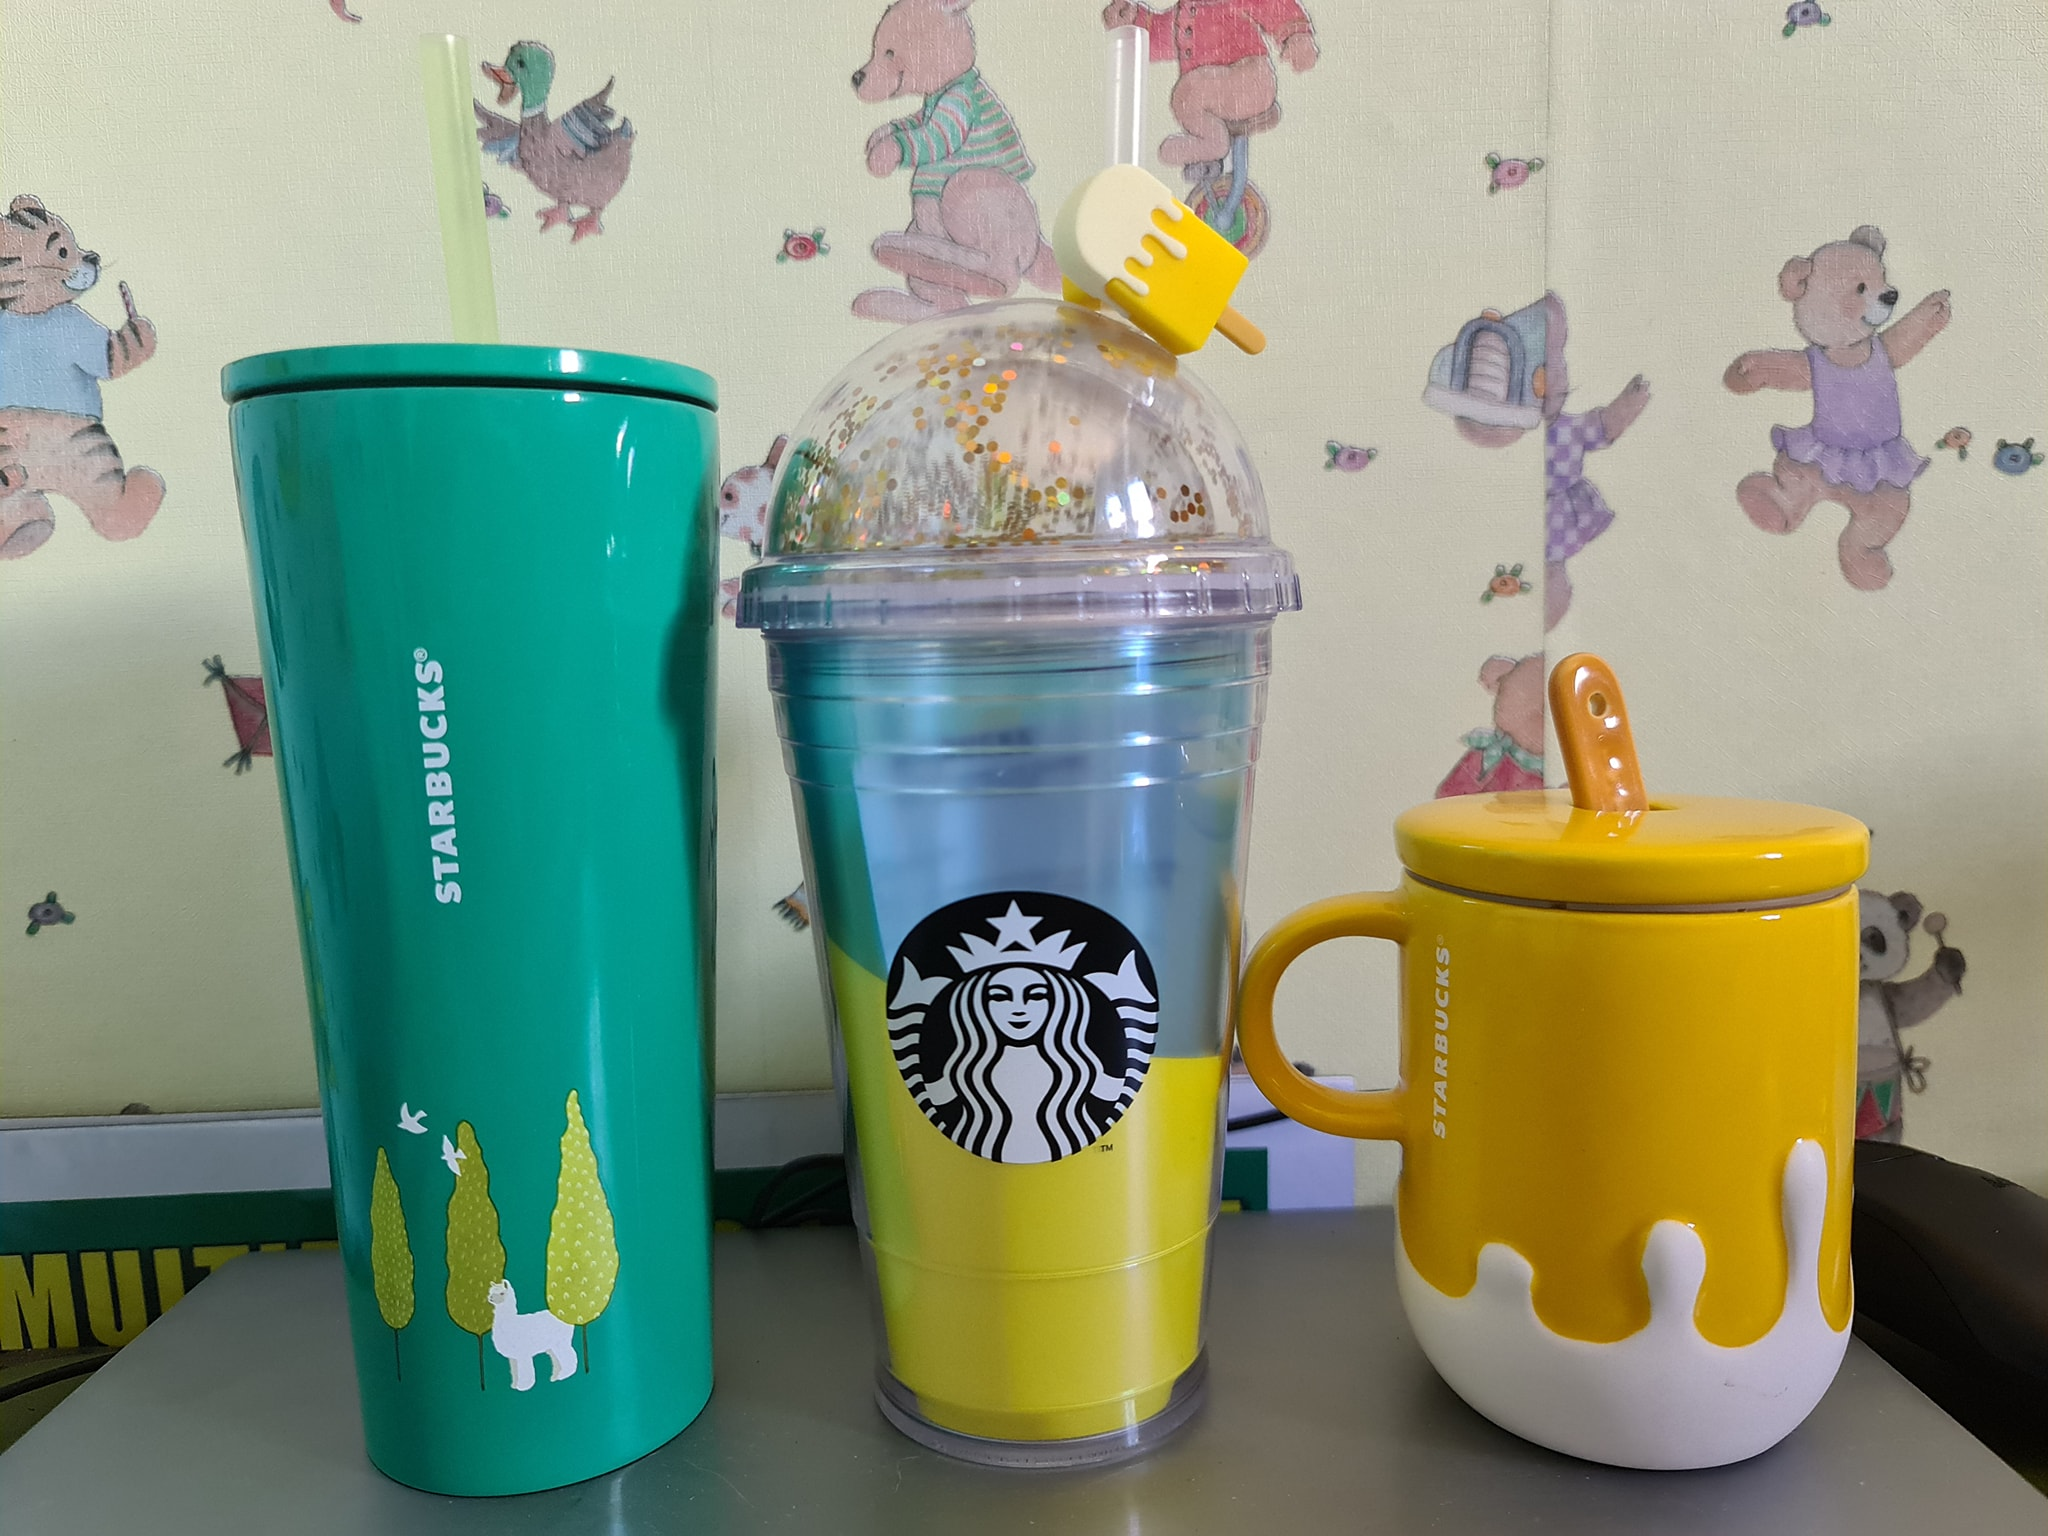 Starbucks Lucky Bag Promo Tumbler